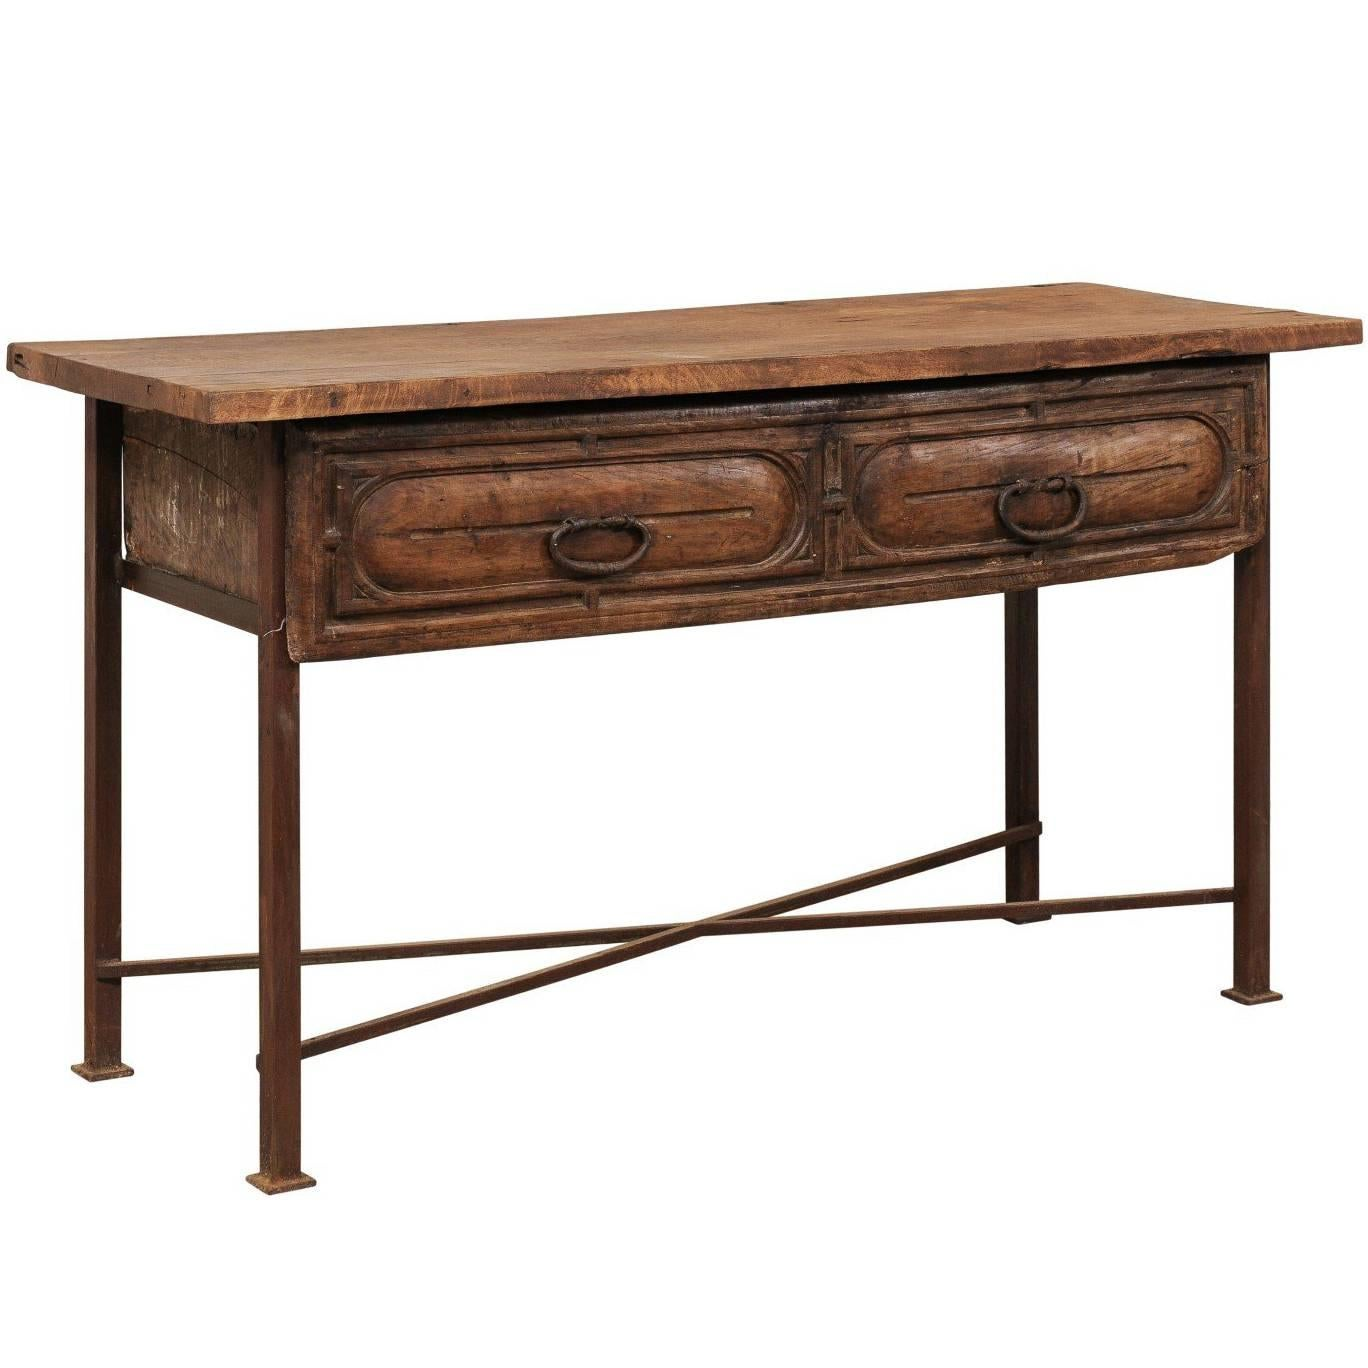 18th century spanish rustic wood and iron console table with spacious drawer